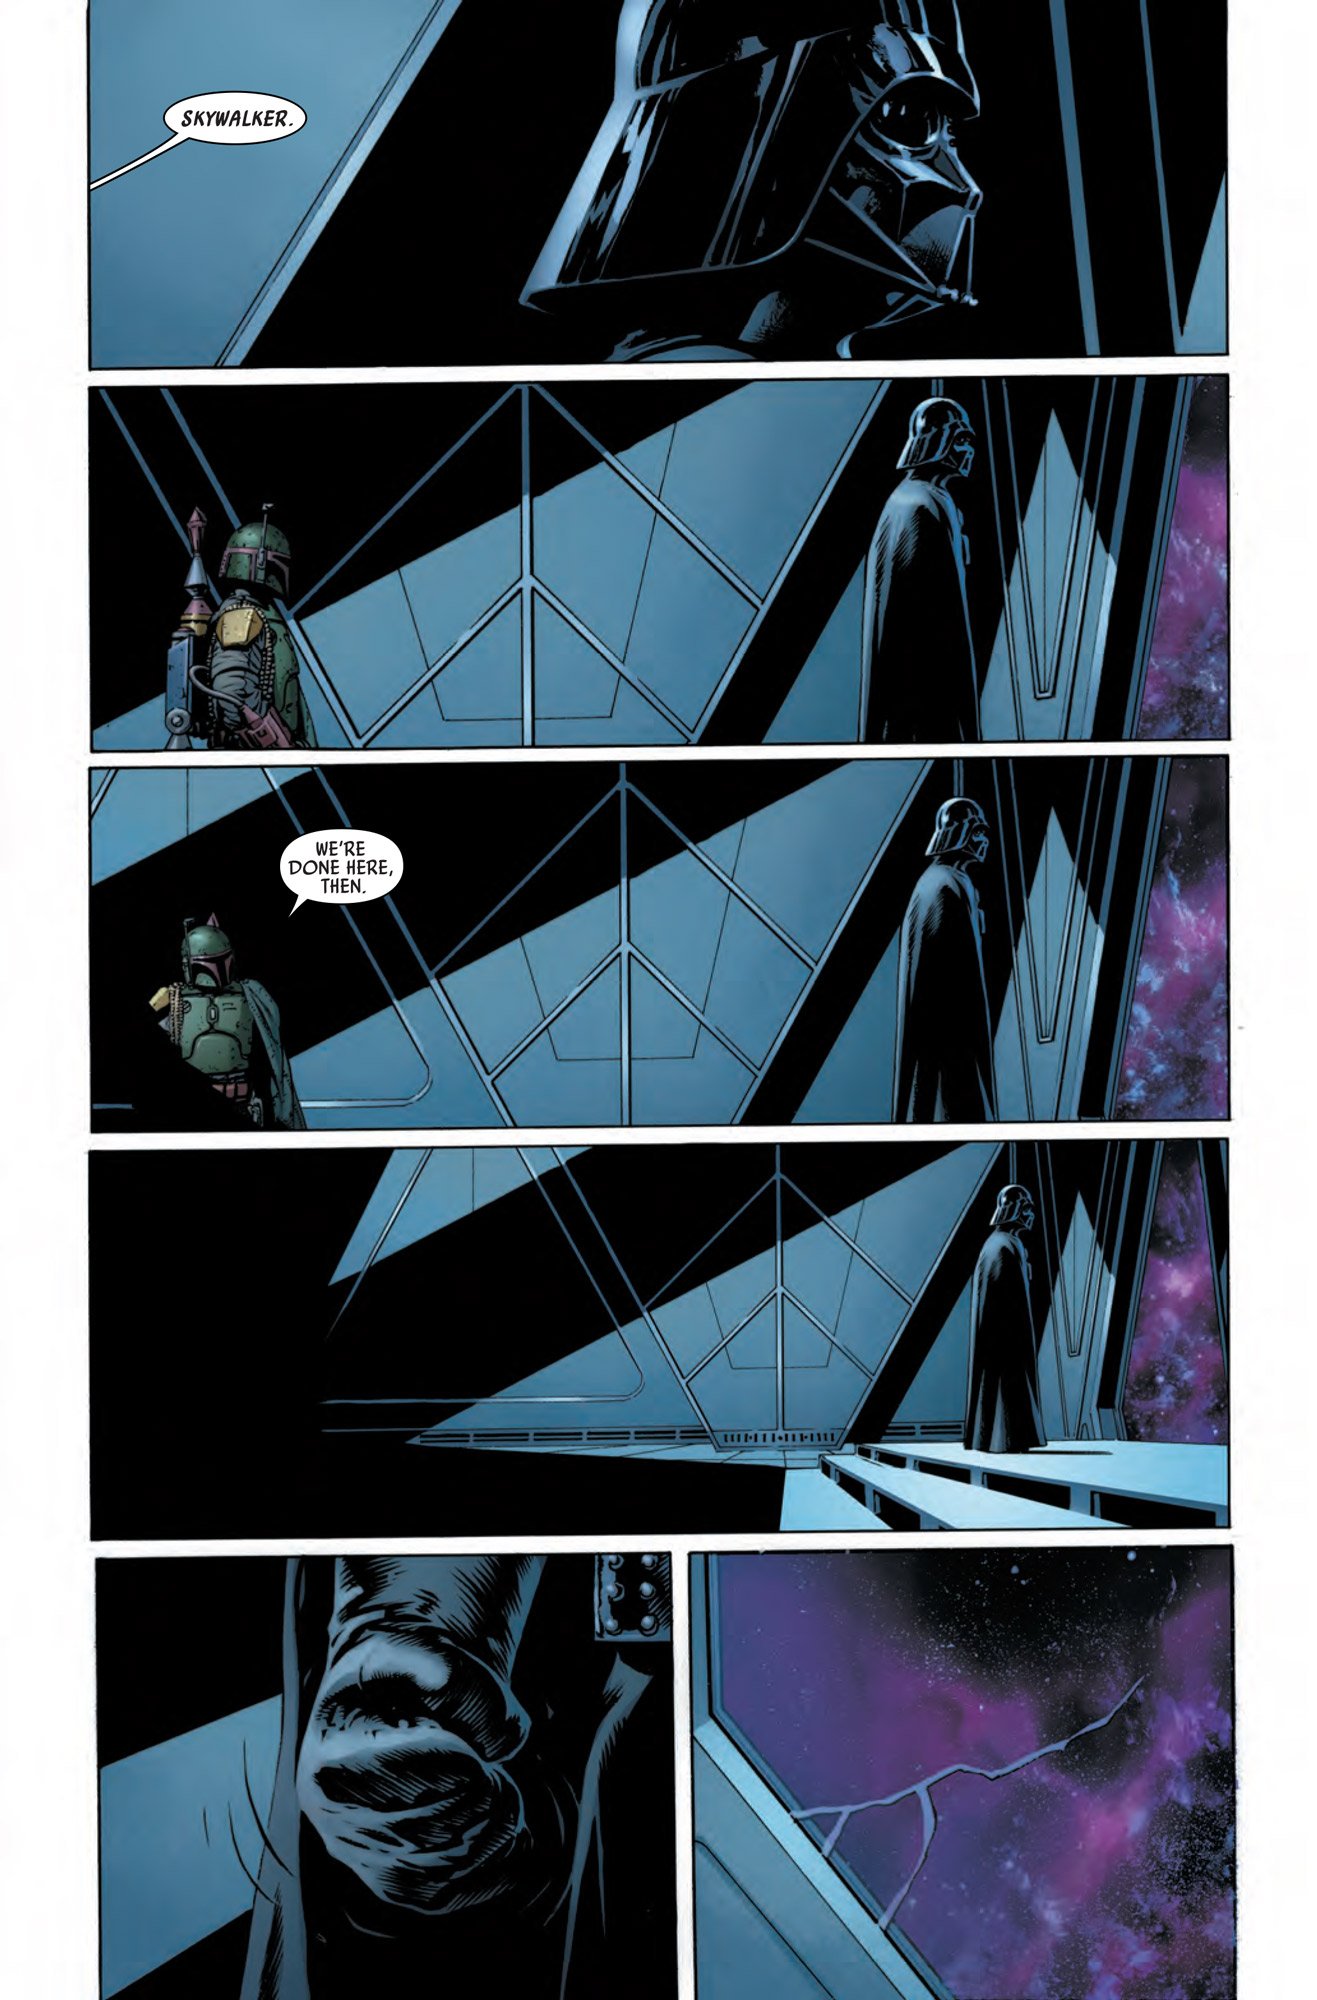 Next panels of comic, Vader seems to not react to the news of the name Skywalker. Boba Fett leaves, and Vader squeezes his fist cracking the glass protecting him from space.